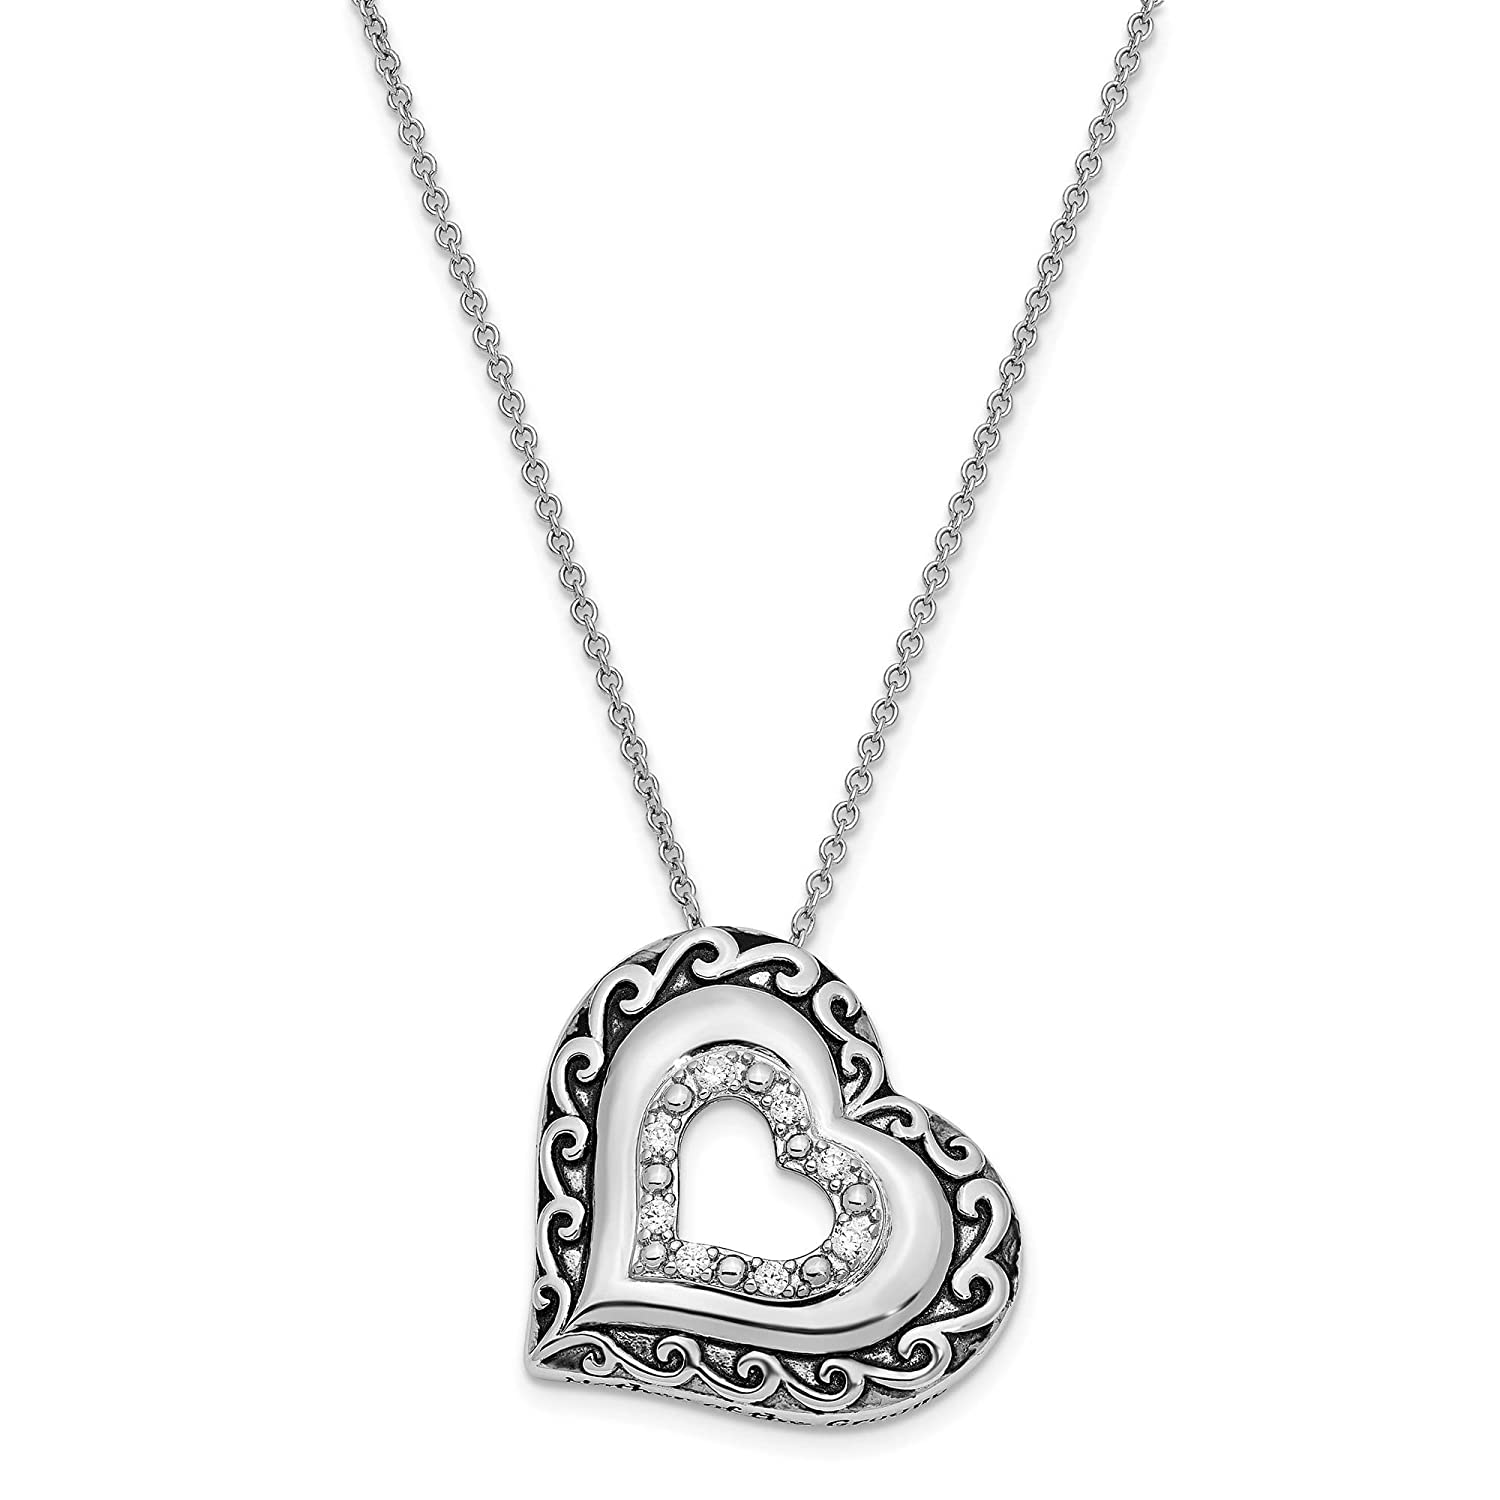 925 Sterling Silver Polished /& Antiqued Mother Of The Groom CZ Necklace 18 by Sentimental Expressions